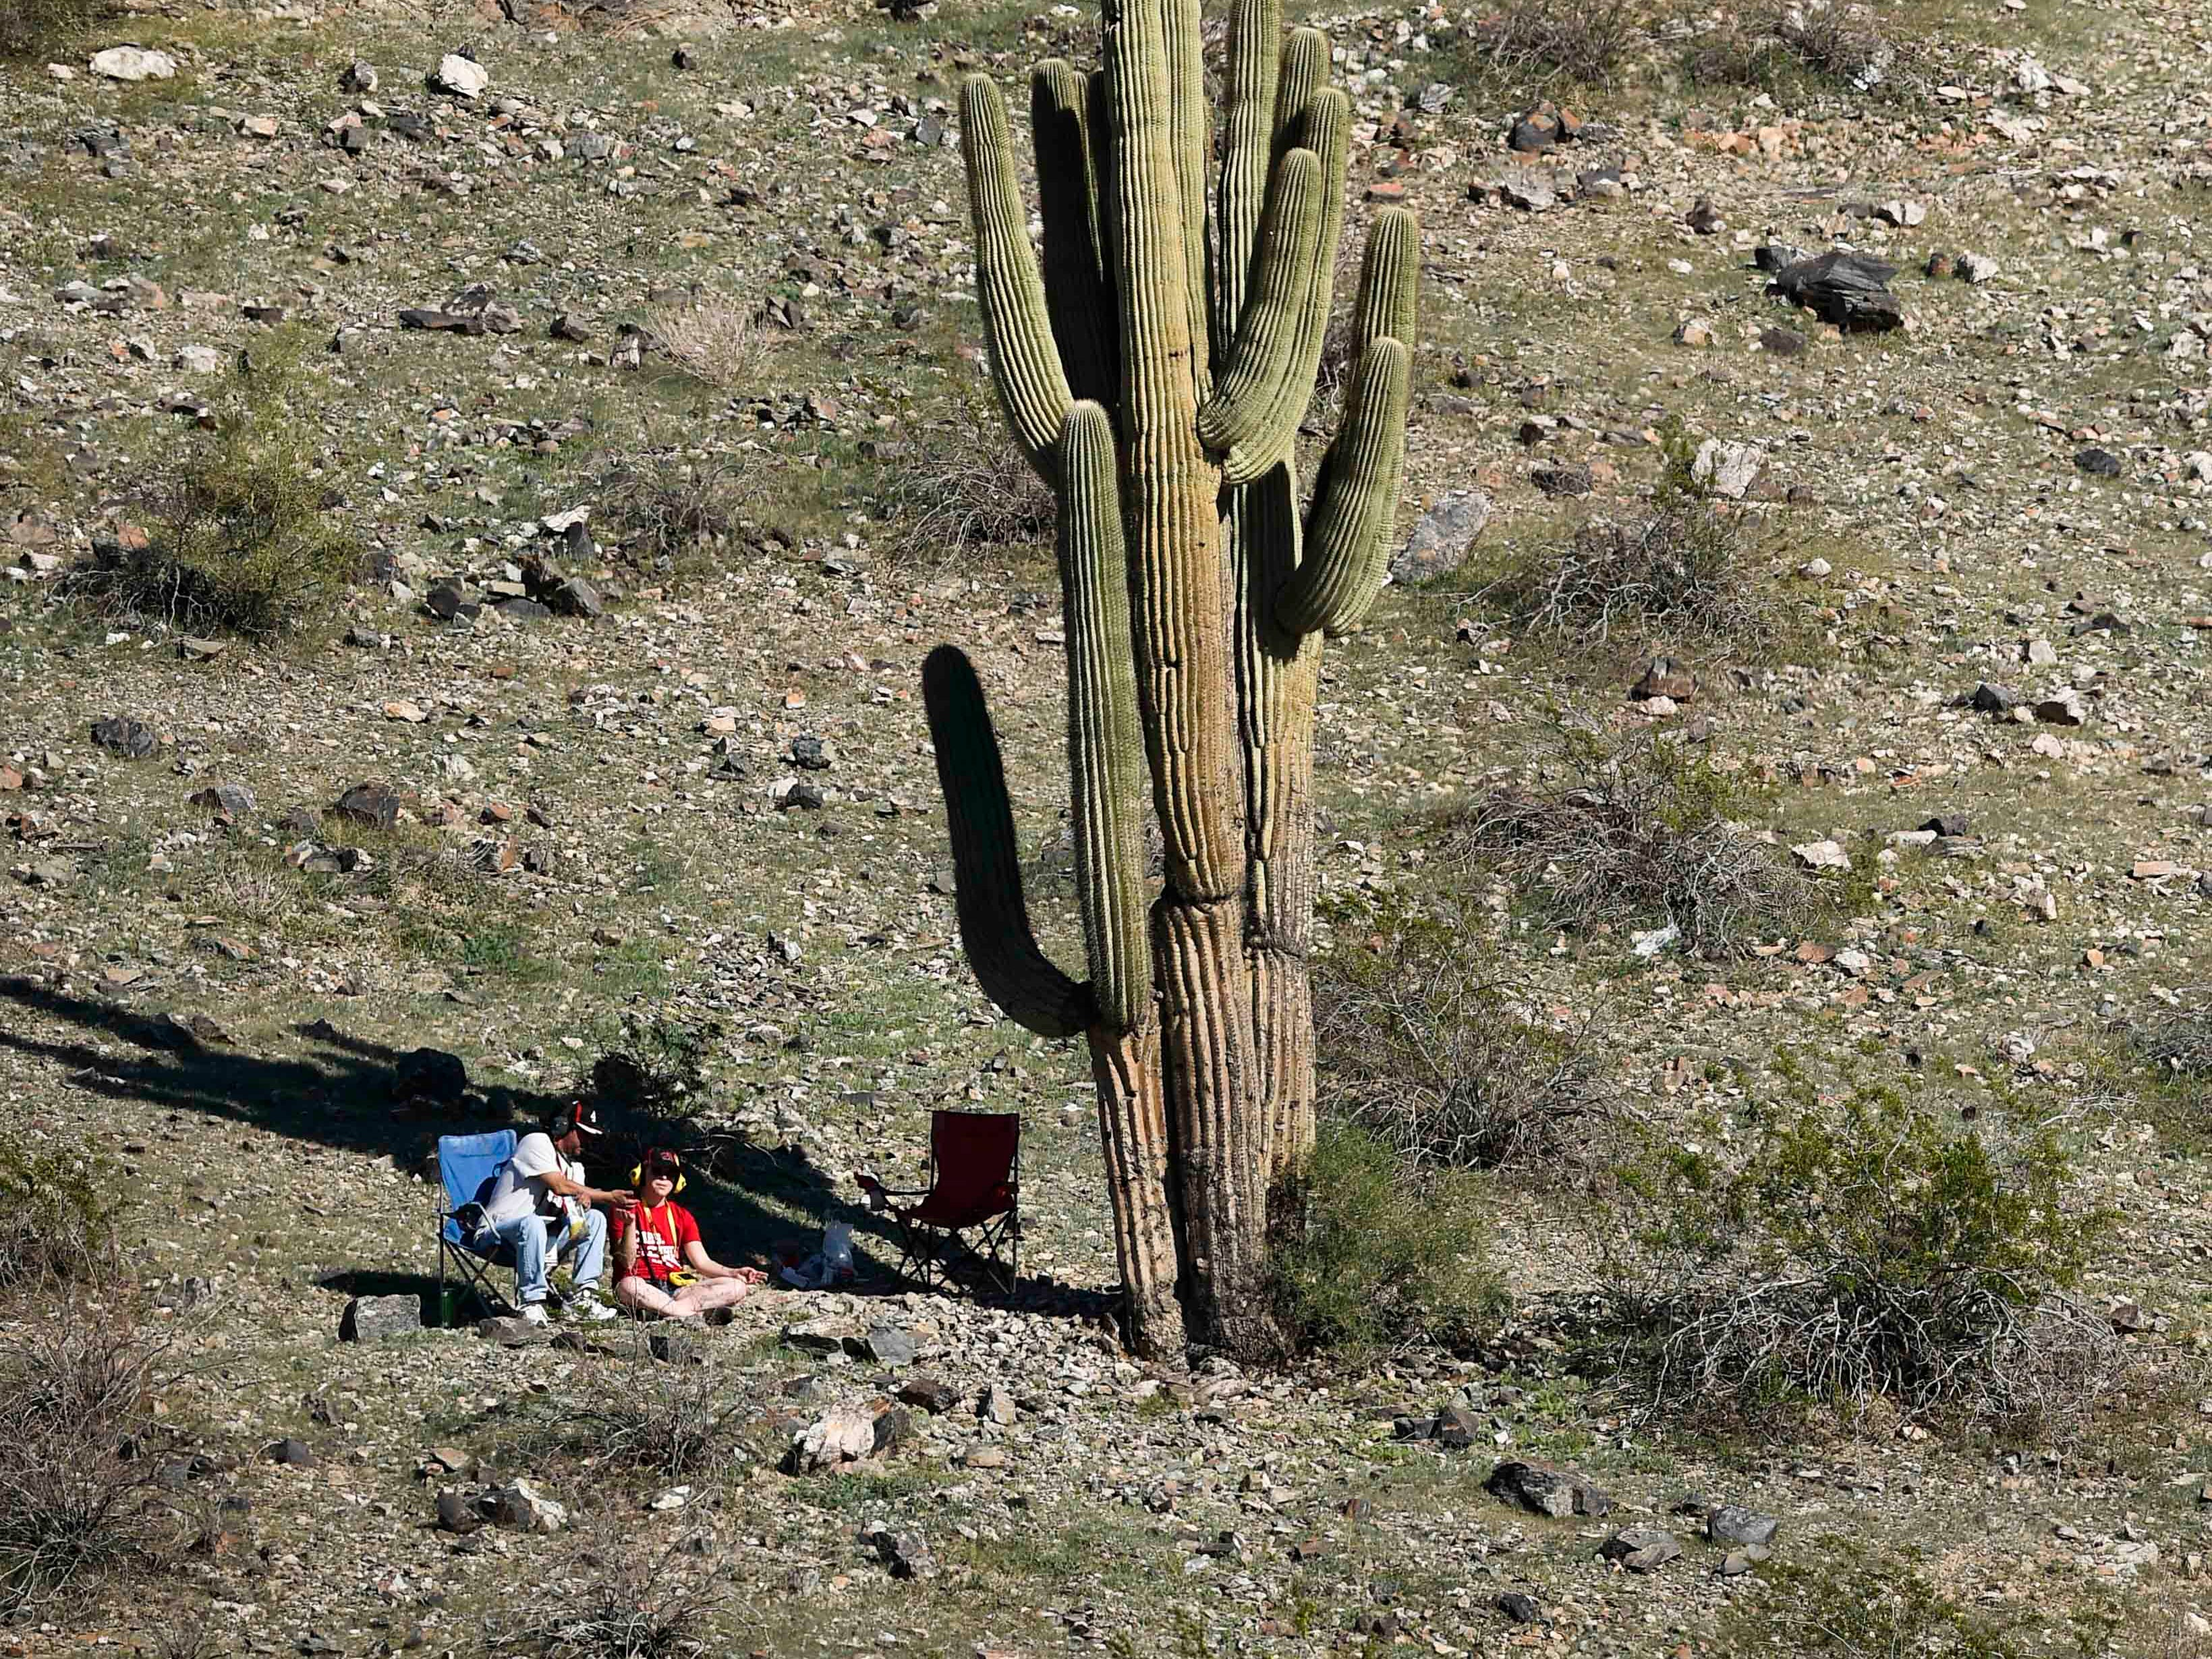 Nov 11, 2018; Avondale, AZ, USA; Fans sit next to a cactus during the Can-Am 500 at ISM Raceway. Mandatory Credit: Kelvin Kuo-USA TODAY Sports